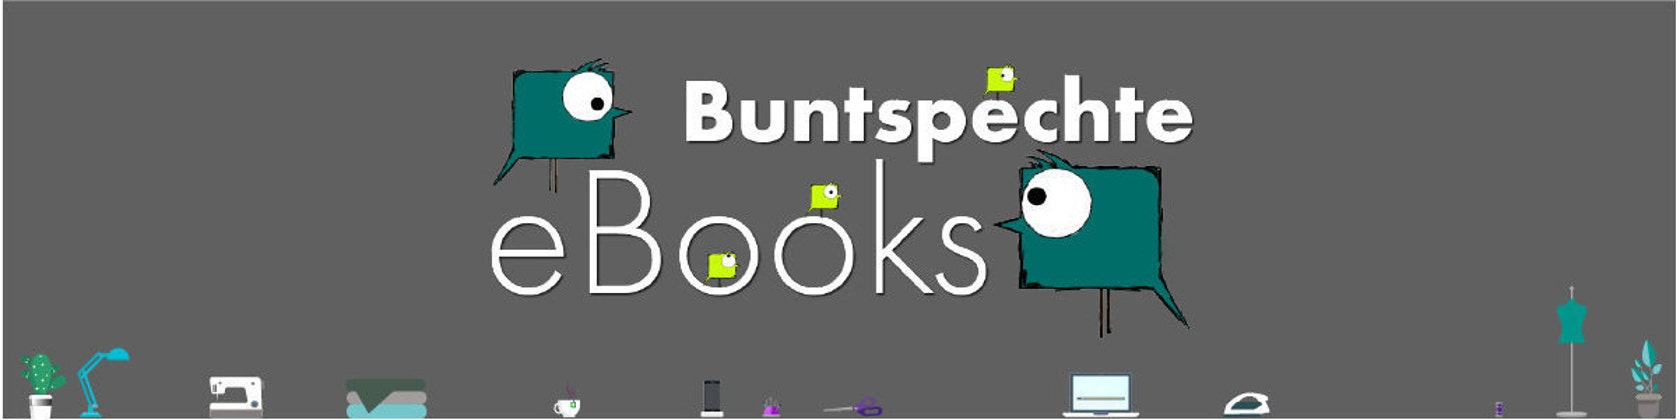 Buntspechte ebooks by buntspechte on etsy buntspechte buntspechte ebooks fandeluxe